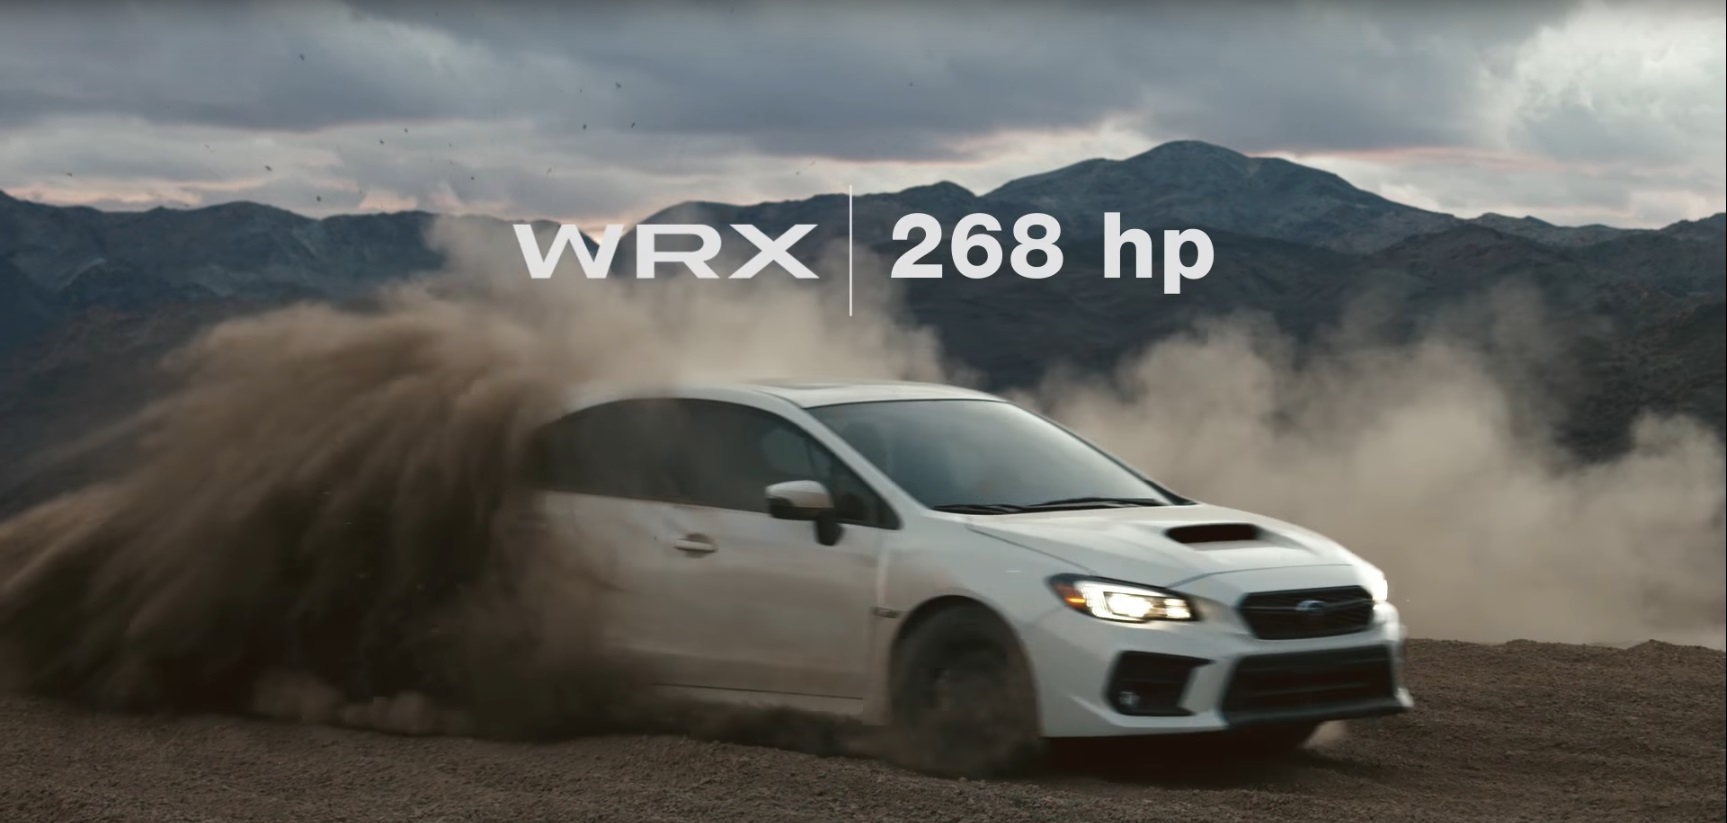 Kicking Up Dust In The New 2018 Subaru Wrx And Sti Trackworthy 19 Inch Wheels On